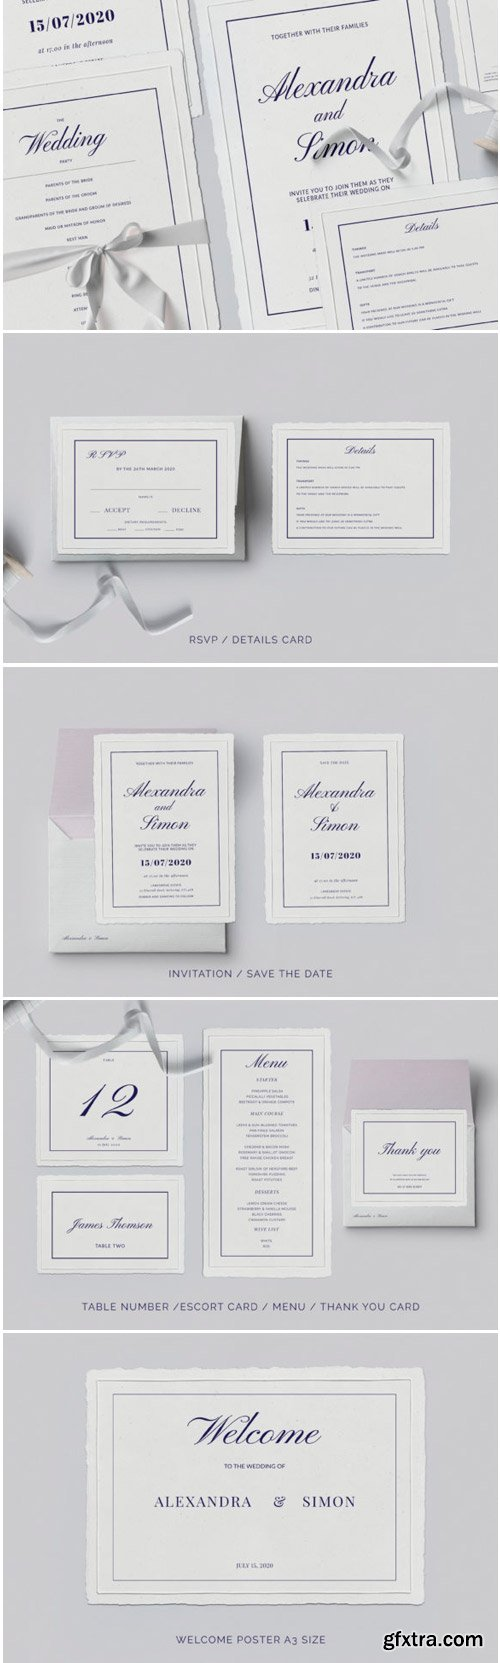 This is an Invitation Wedding Template Suite 1771790